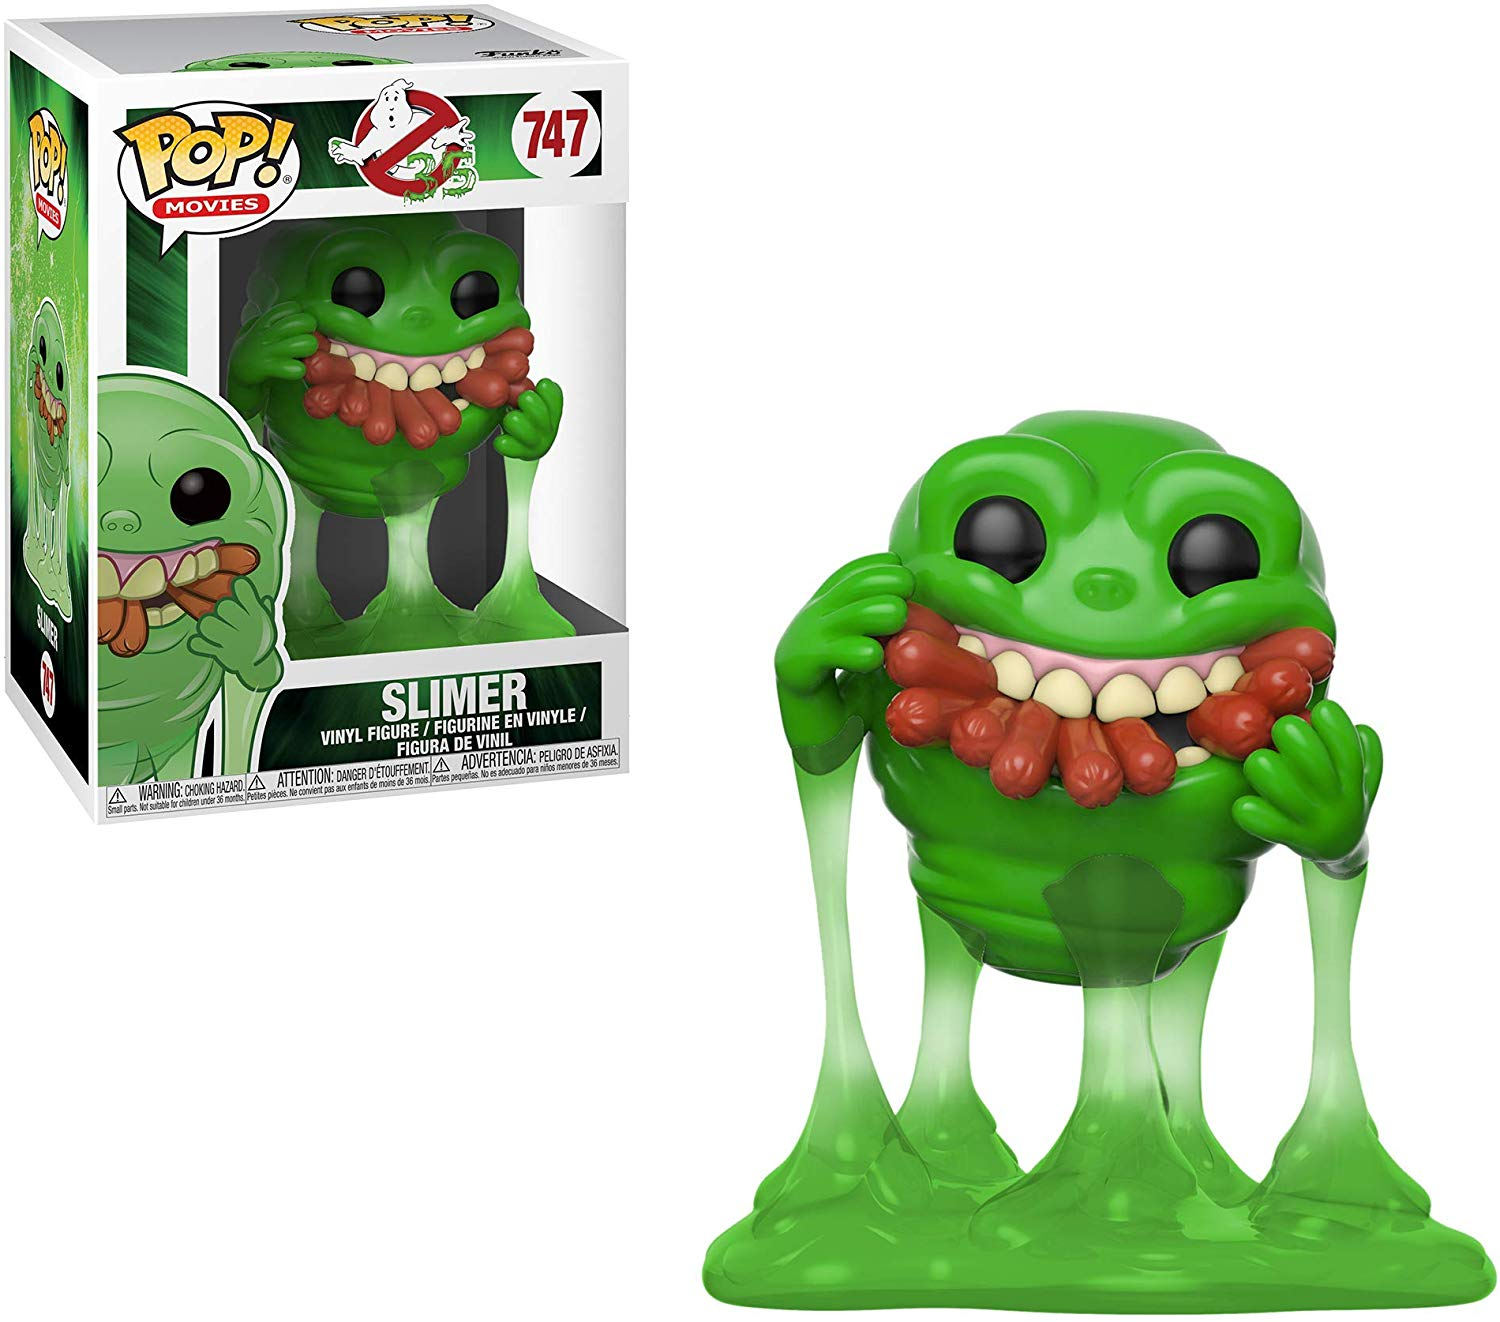 Ghostbusters-Slimer with Hot Dogs Collectible Figure £6.49 on Amazon